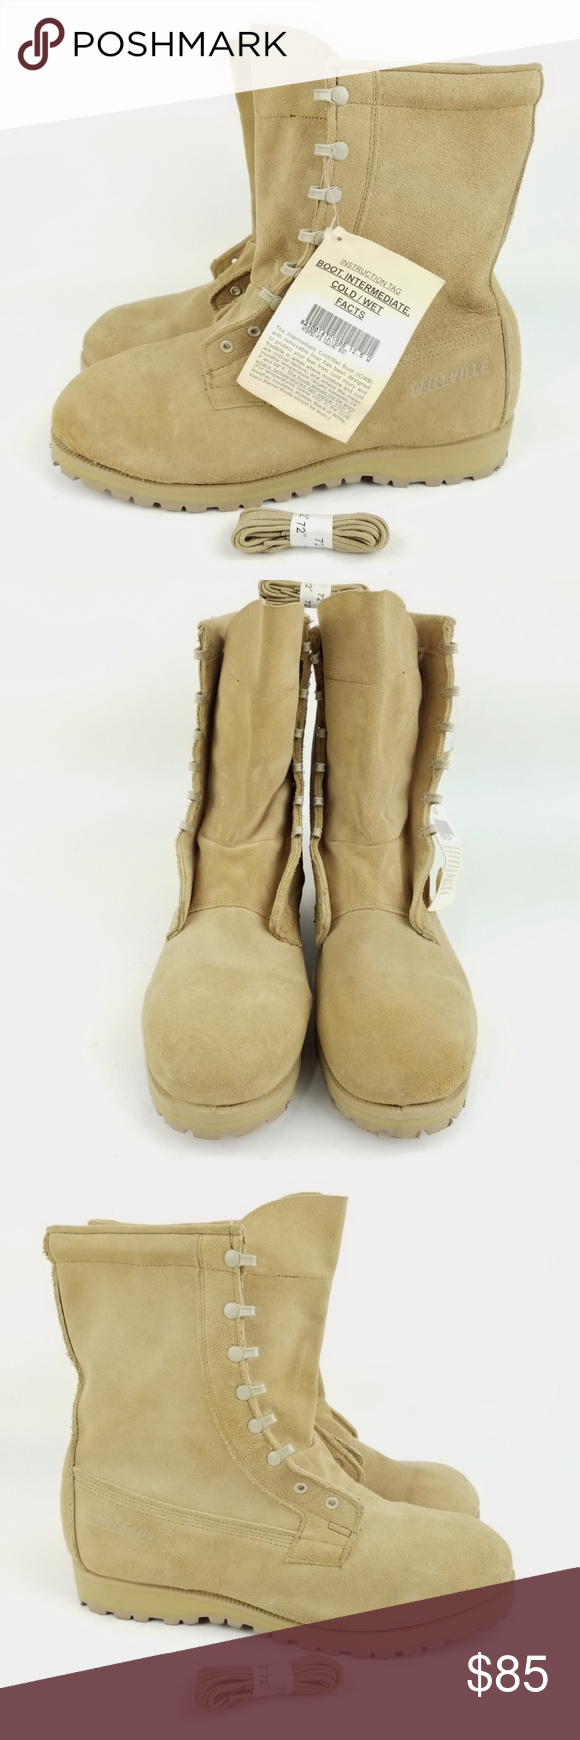 2c3f62ed078 Belleville ICWT 12.5 W Desert Tan Army Boots EH46 USA Belleville ...